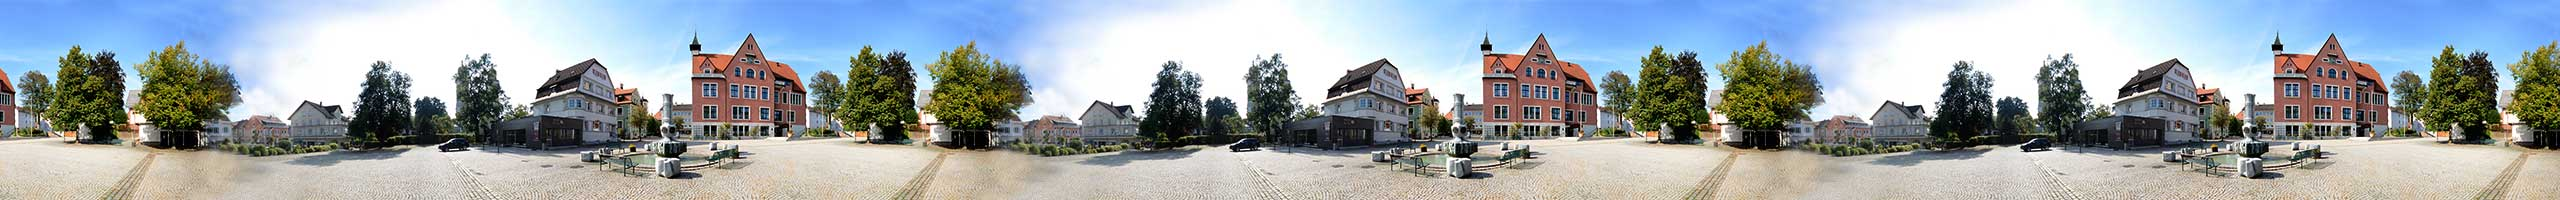 Panorama_Lindenberg_01_final_2560pix.jpg